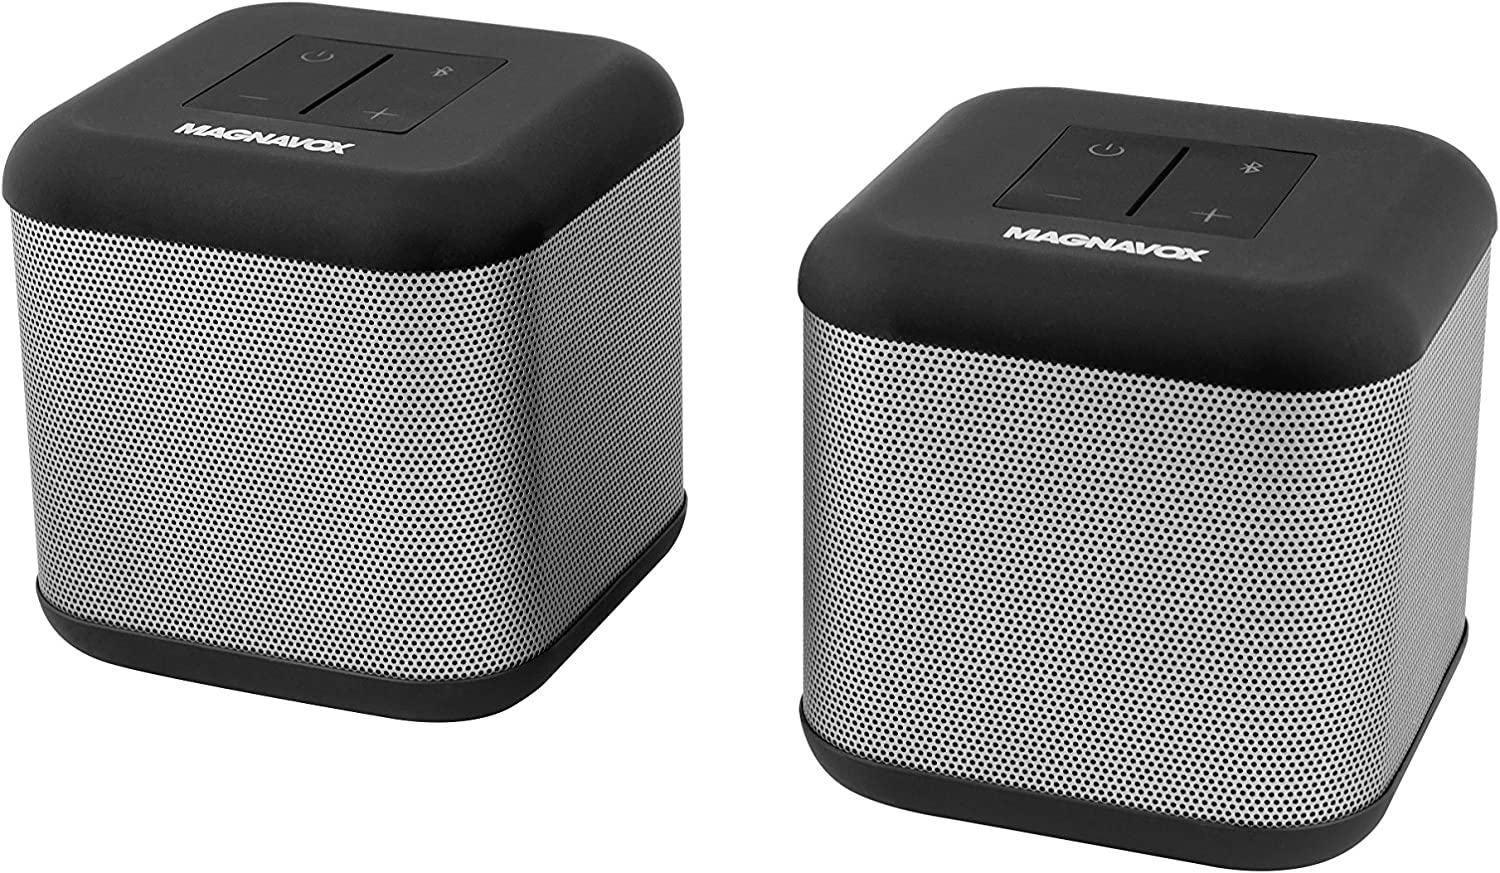 Magnavox - Stereo Speakers with Dual Mode Operations, DSP 360 Degree Sound Effect and Bluetooth Wireless Technology